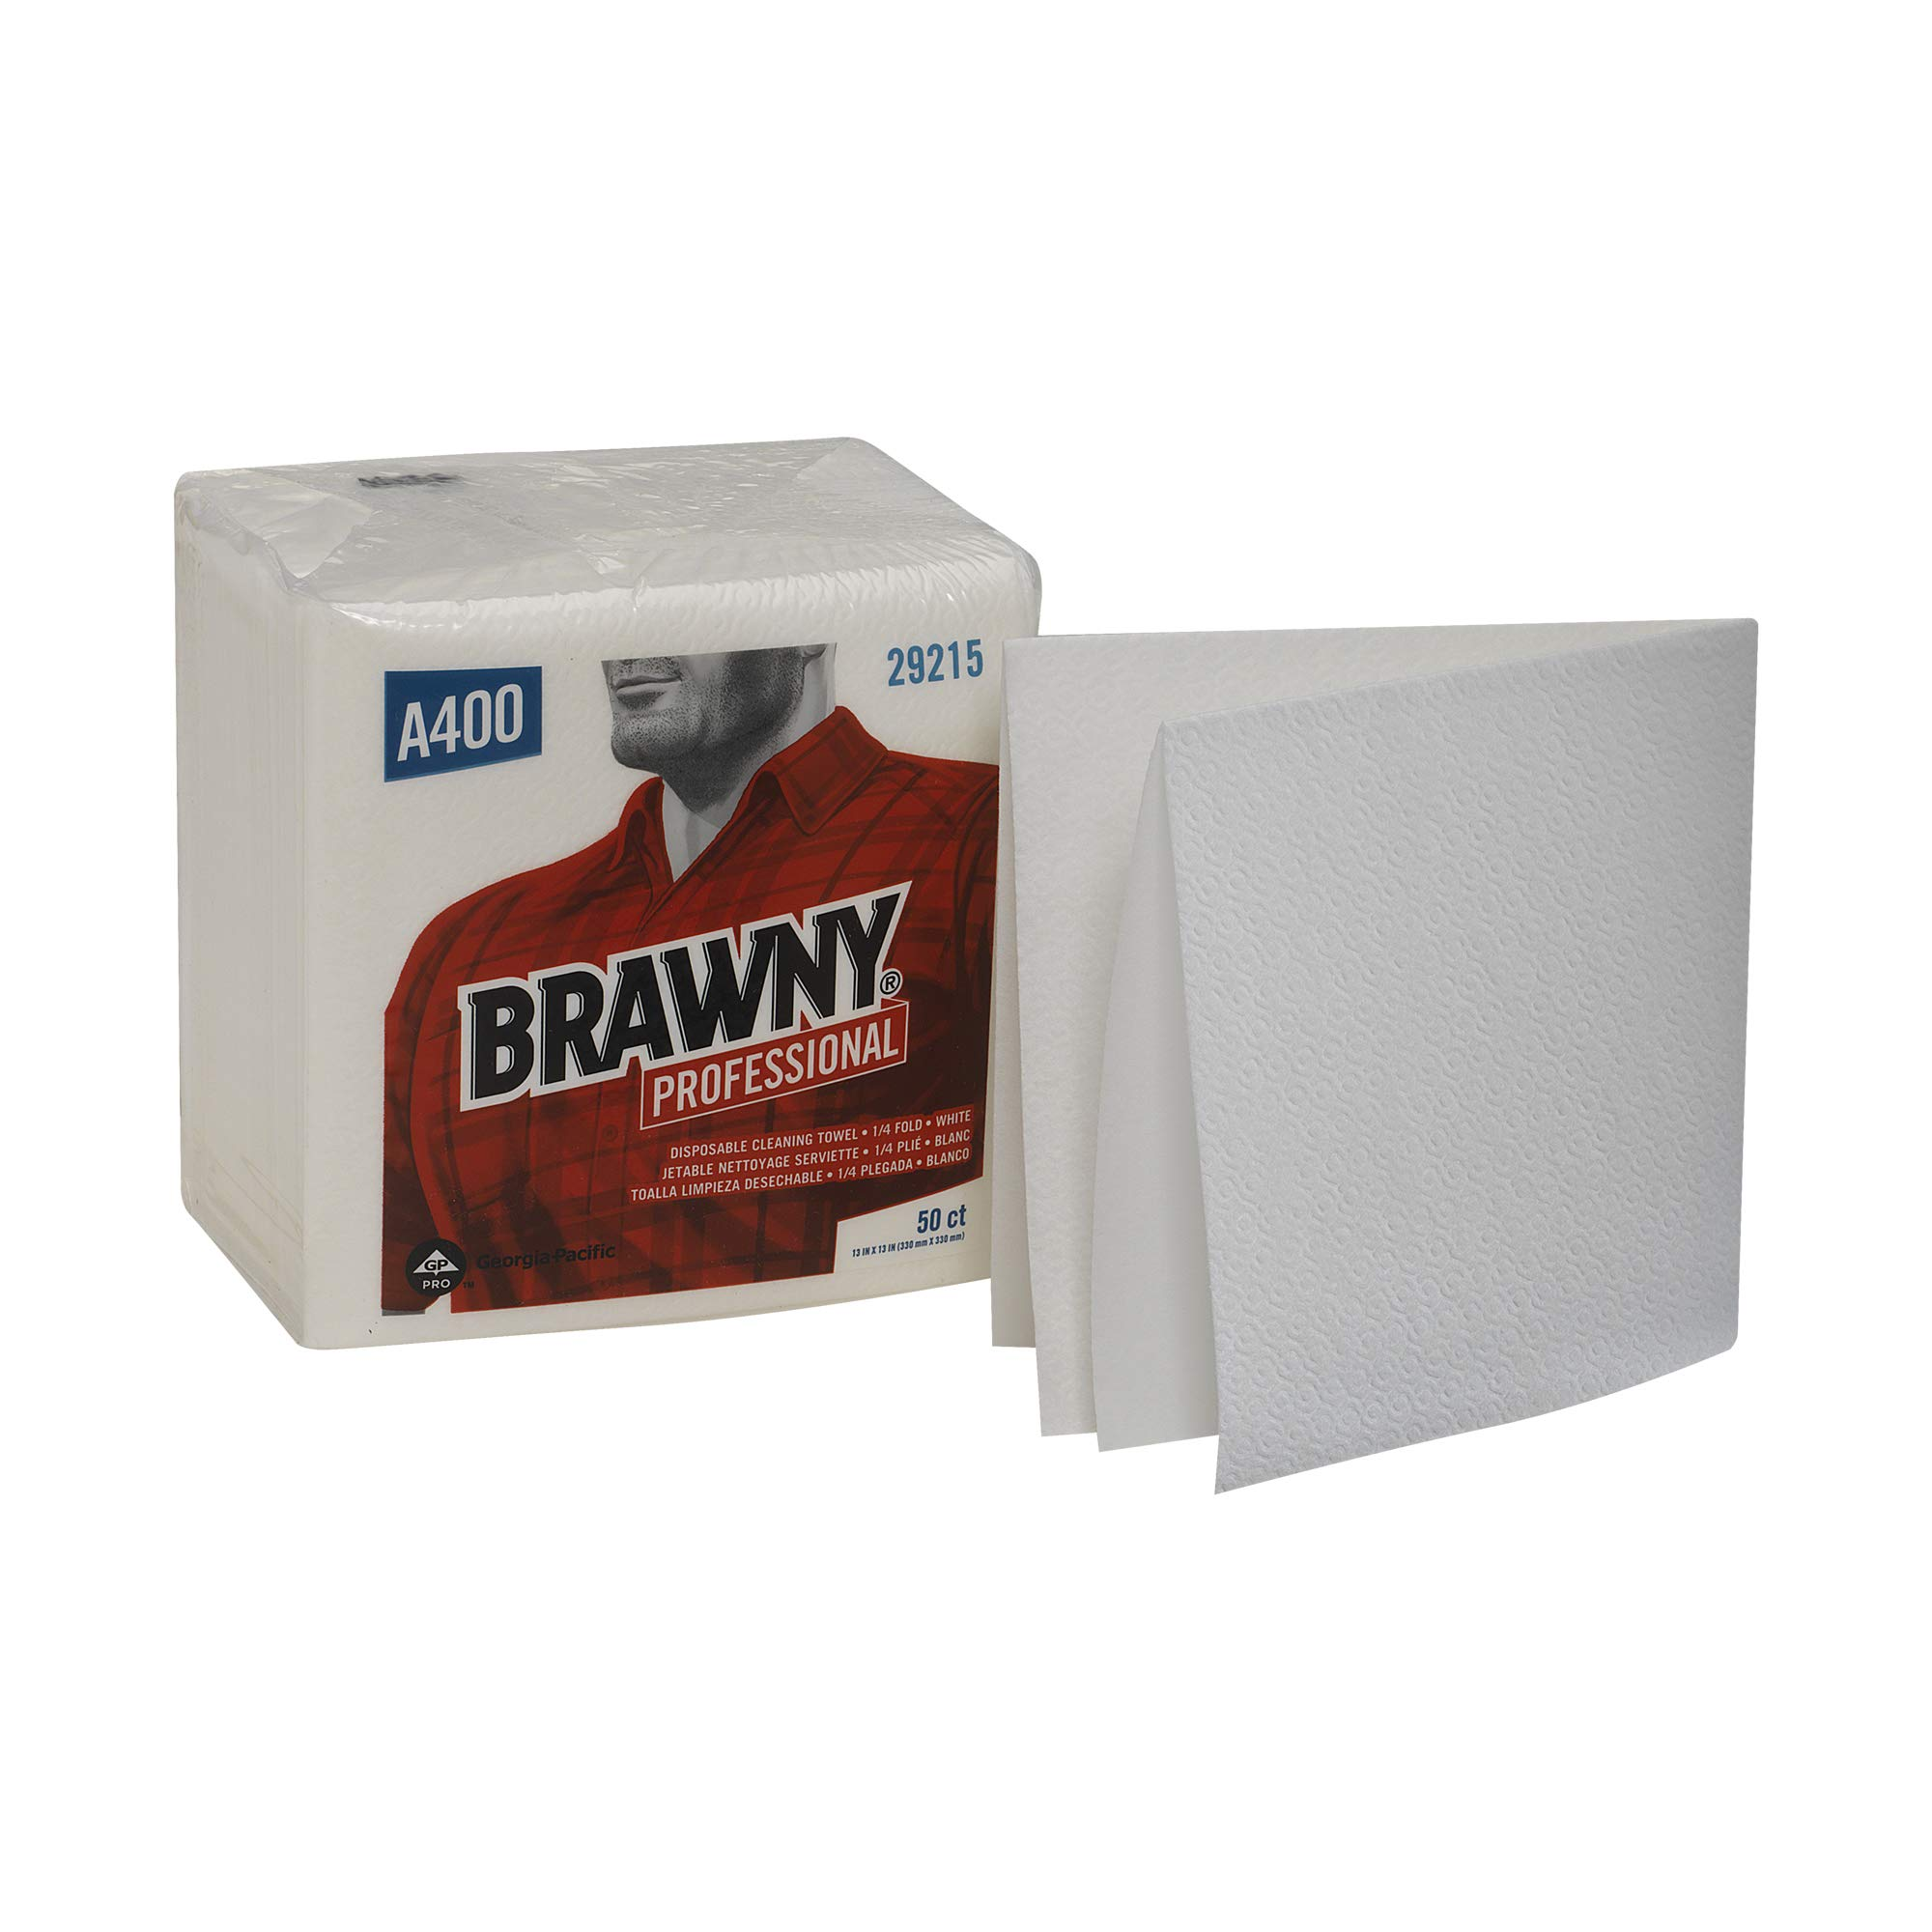 Brawny Professional 1/4-Fold A400 Disposable Cleaning Towel by GP PRO (Georgia